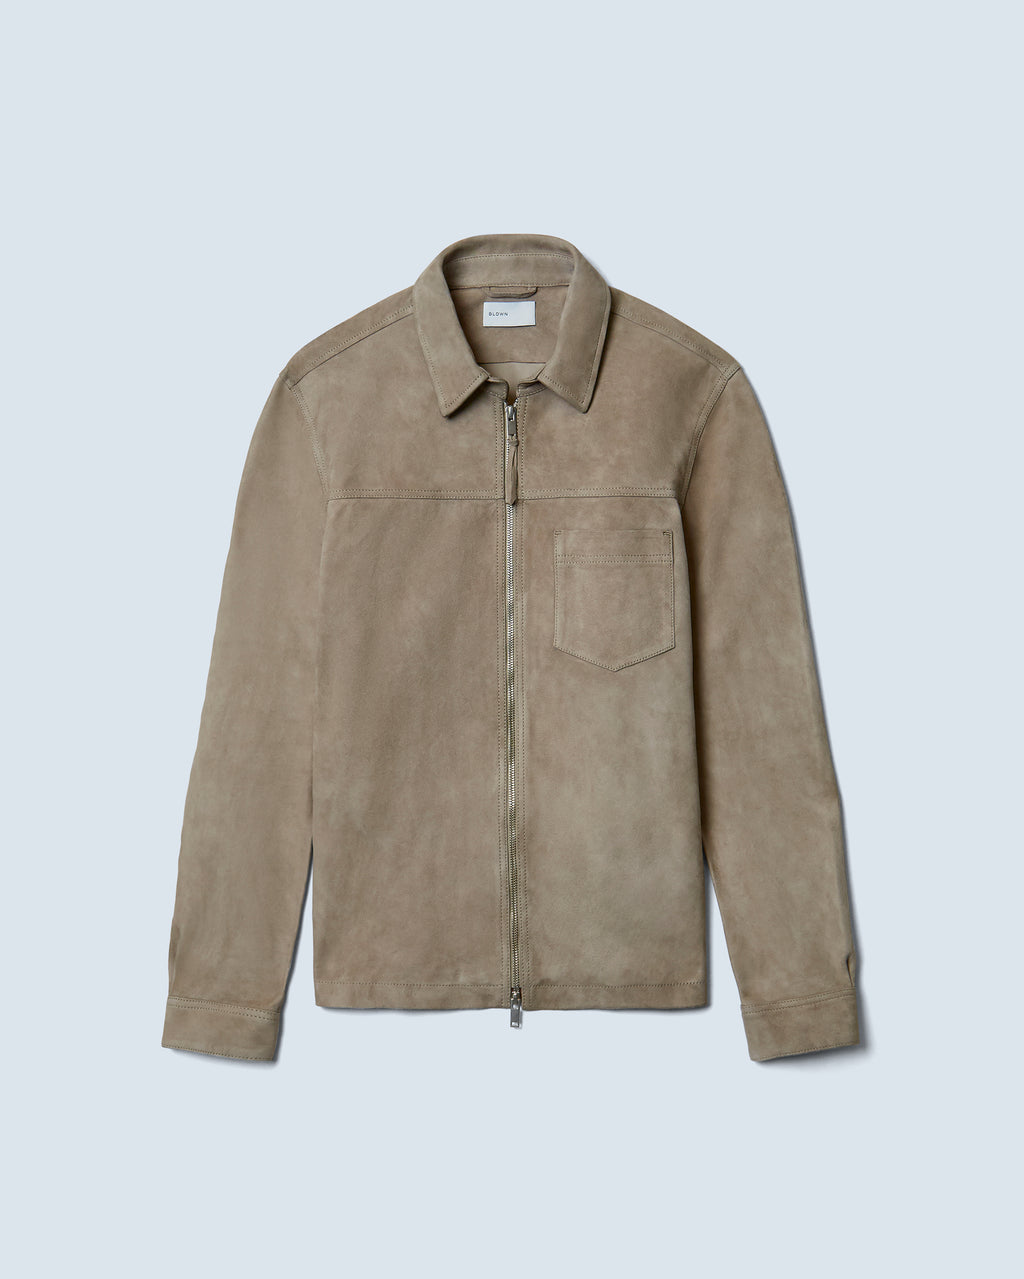 The Sedgwick Jacket in Dry Tan